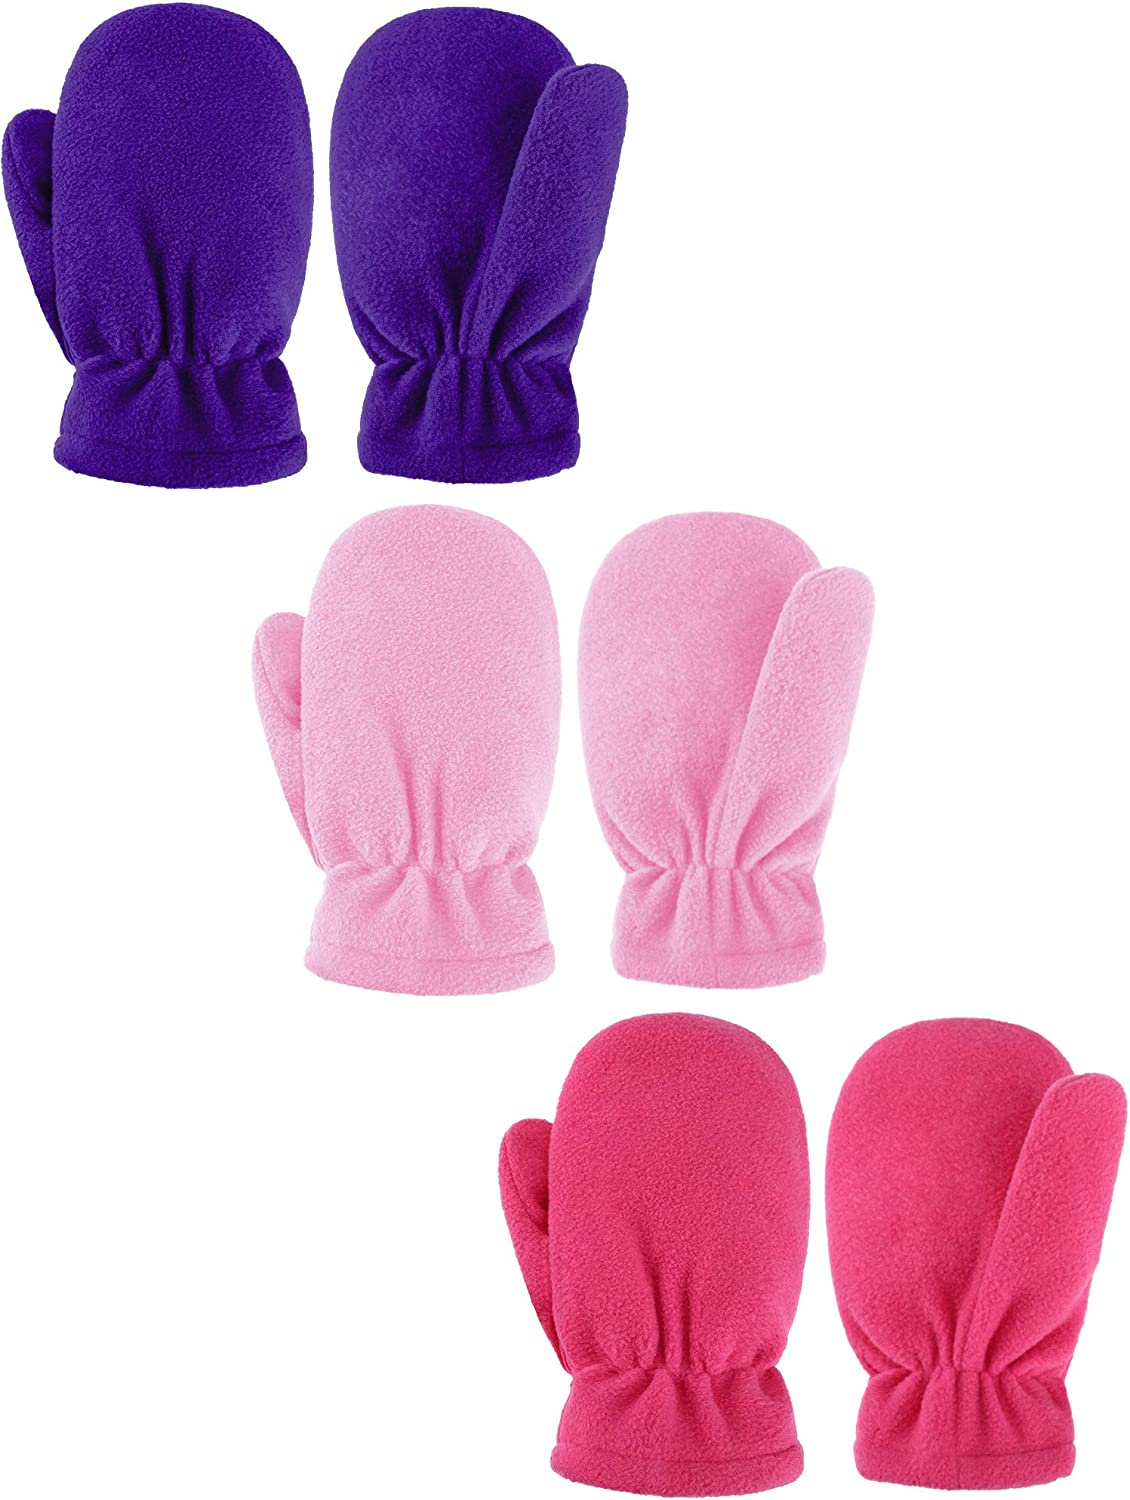 SATINIOR 3 Pairs Baby and Toddler Fleece Mittens Kids Winter Warm Mittens for Boy Girl